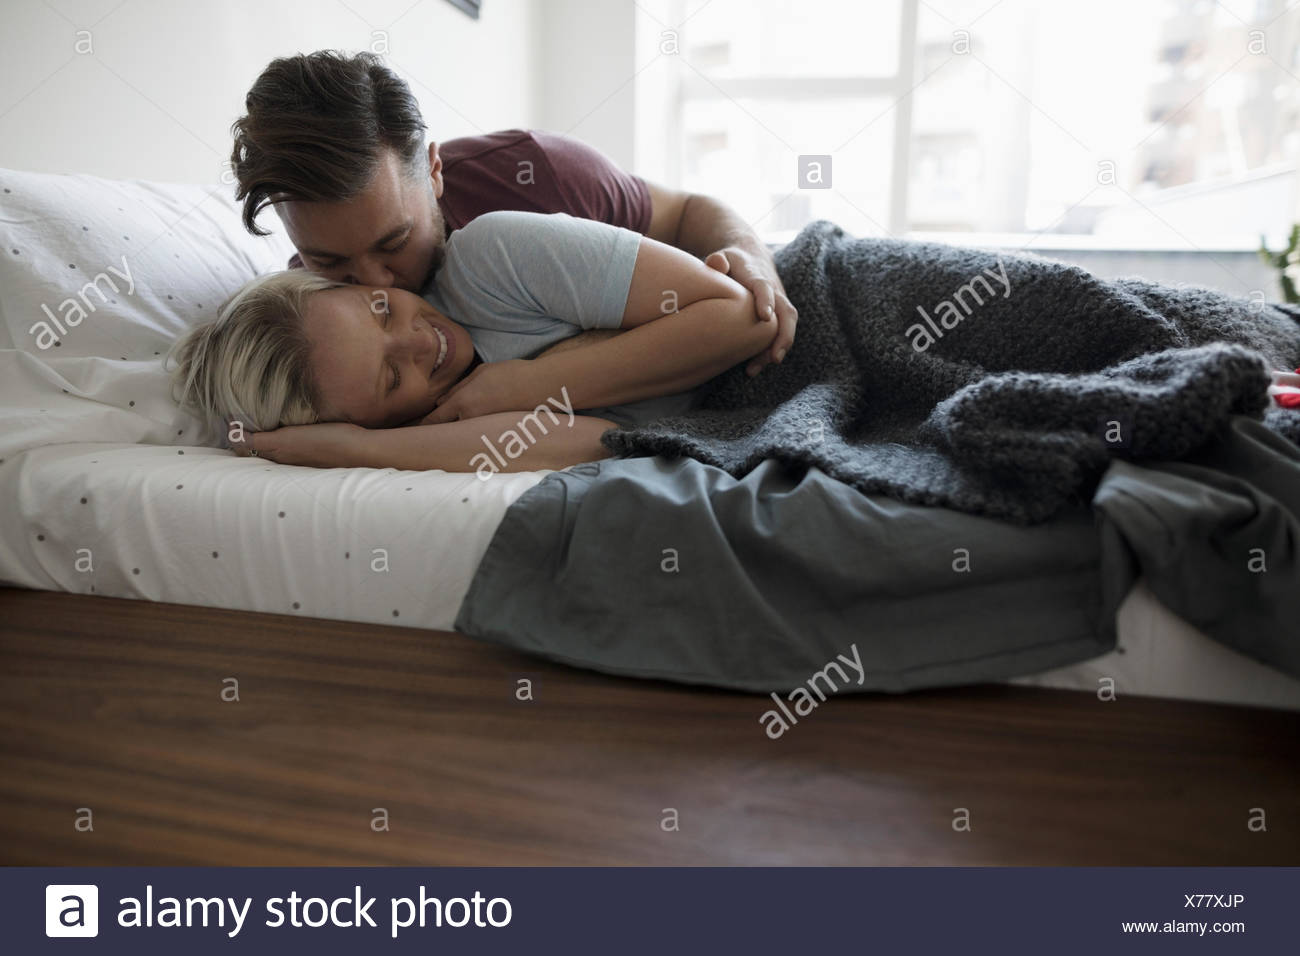 Couple Kissing And Cuddling